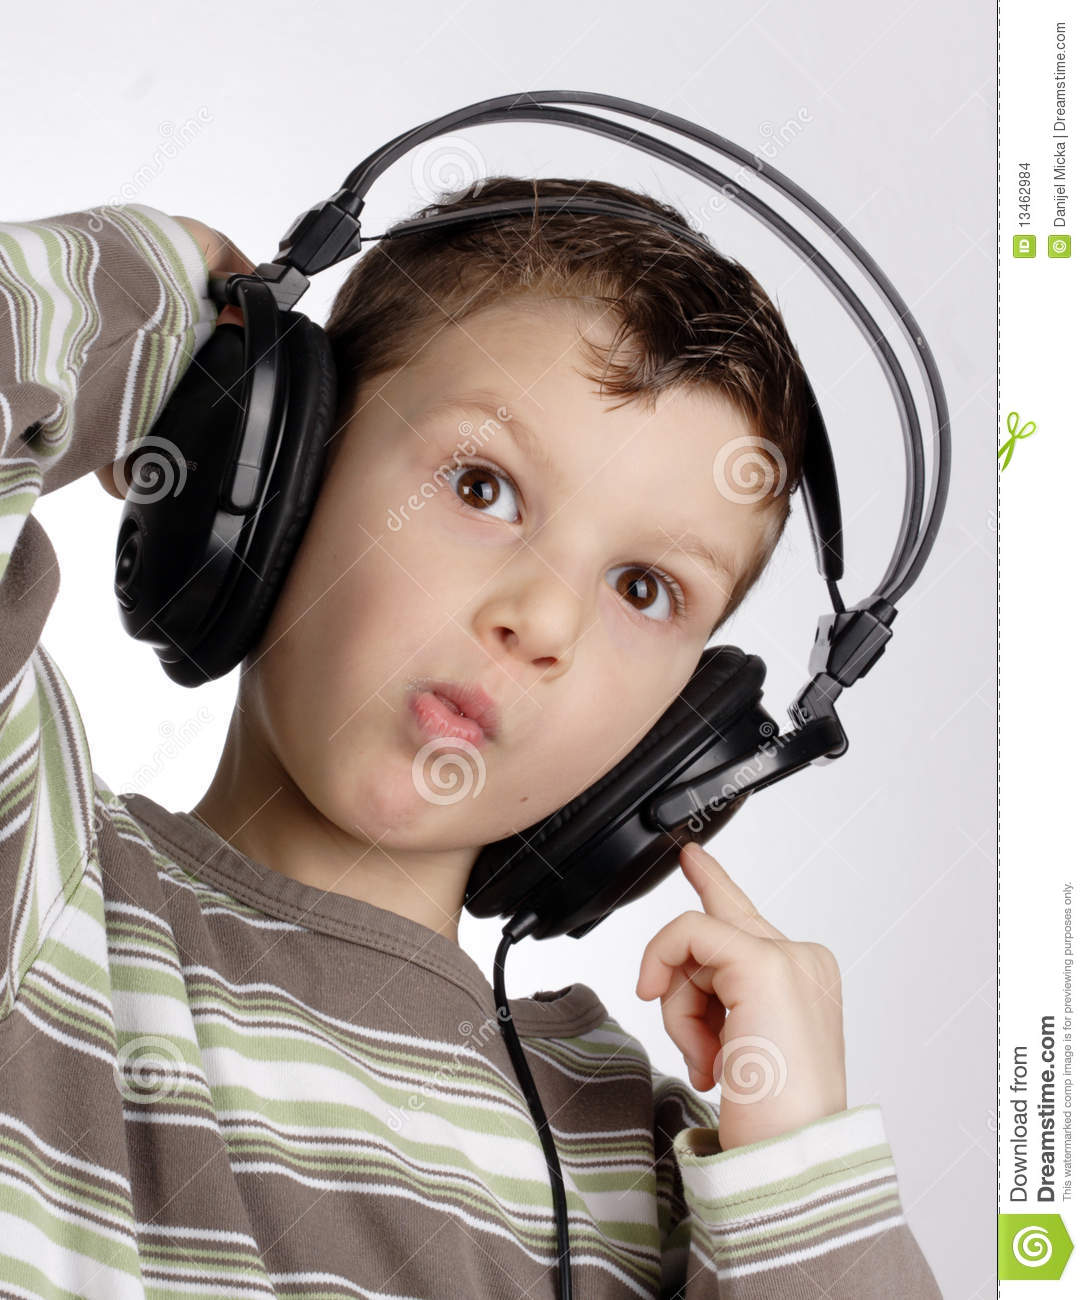 Kid with headset